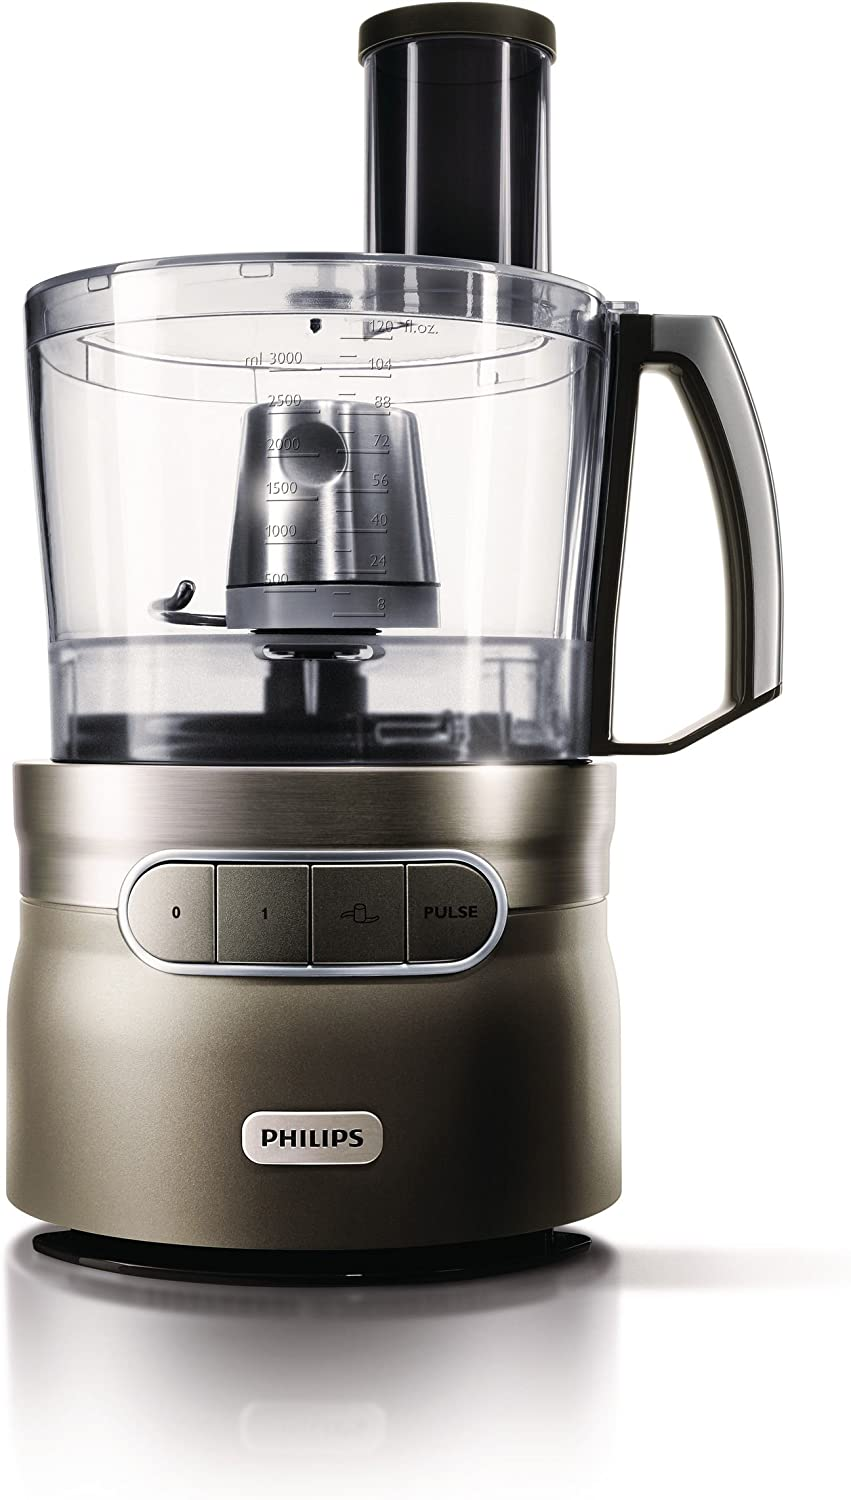 Philips Robust Collection HR7781/00 1200W Aluminio, Gris - Robot de cocina (Aluminio, Gris, 1,5 m, 1200 W, 220-240 V, 50/60 Hz, 8,6 kg): Amazon.es: Hogar